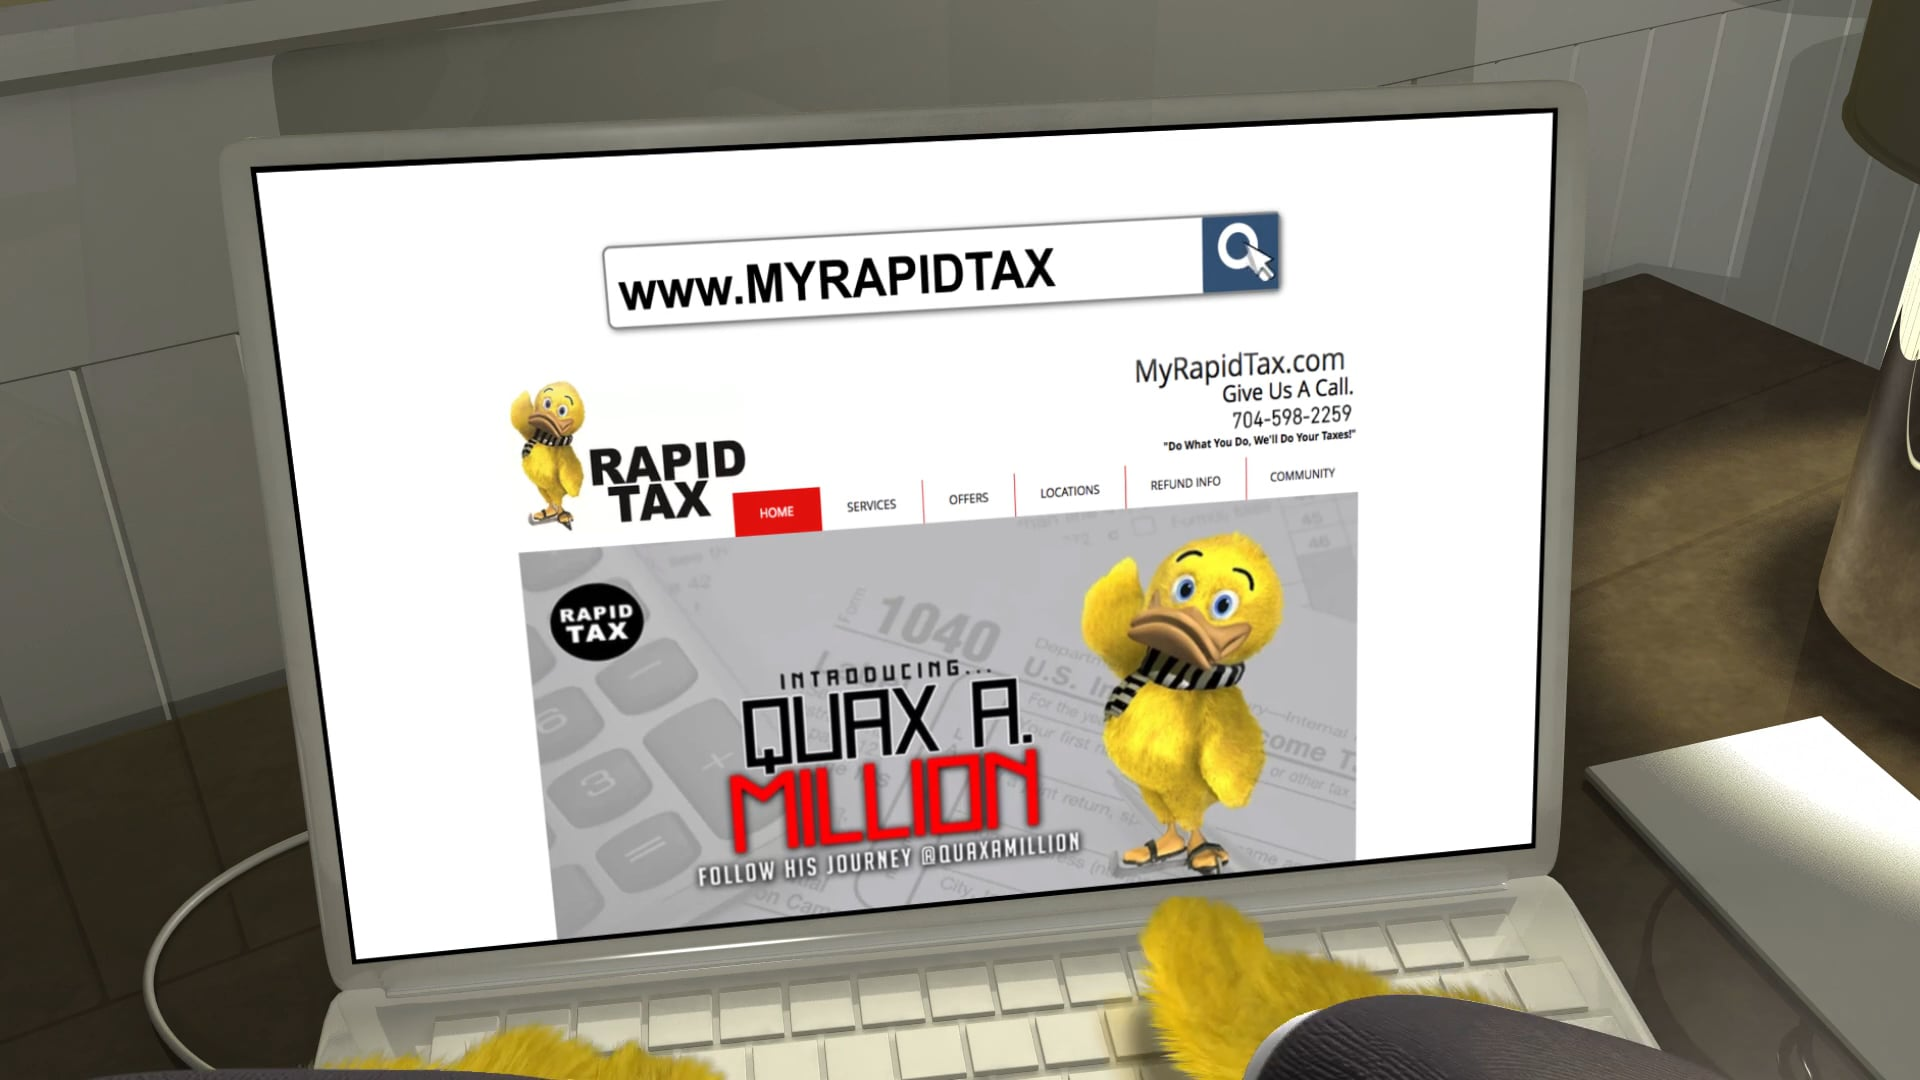 """""""Introducing Quax A. Million"""" - Rapid Tax 2017 Commercial HD"""